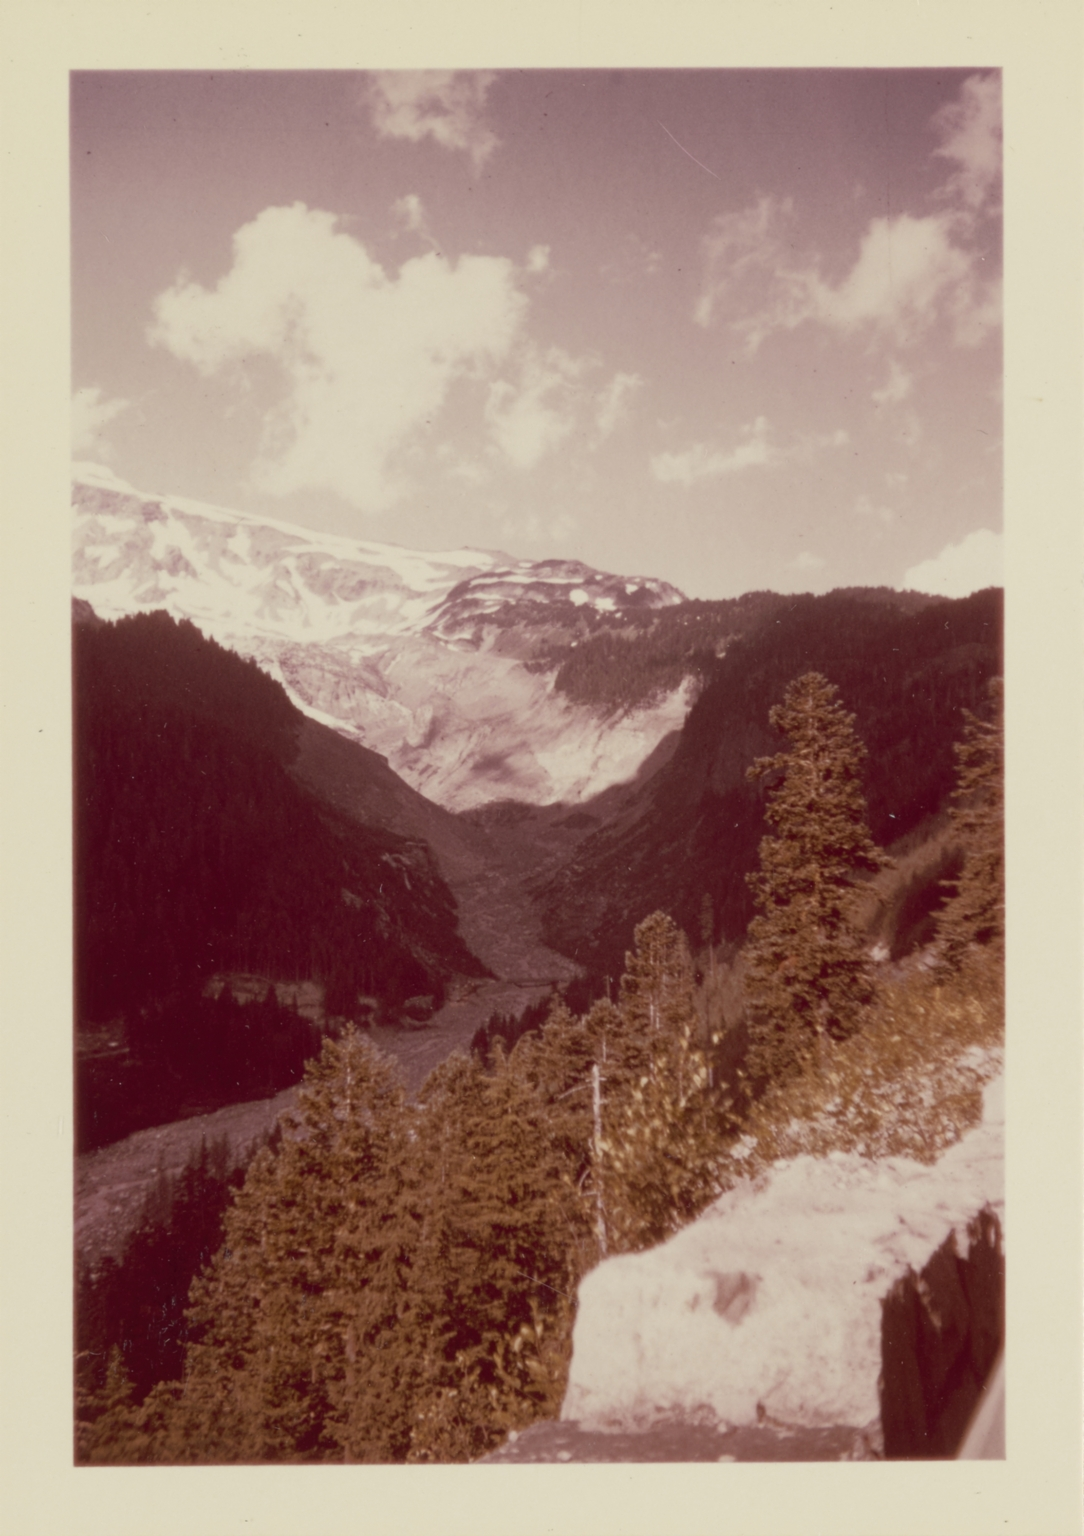 Nisqually Glacier, Washington